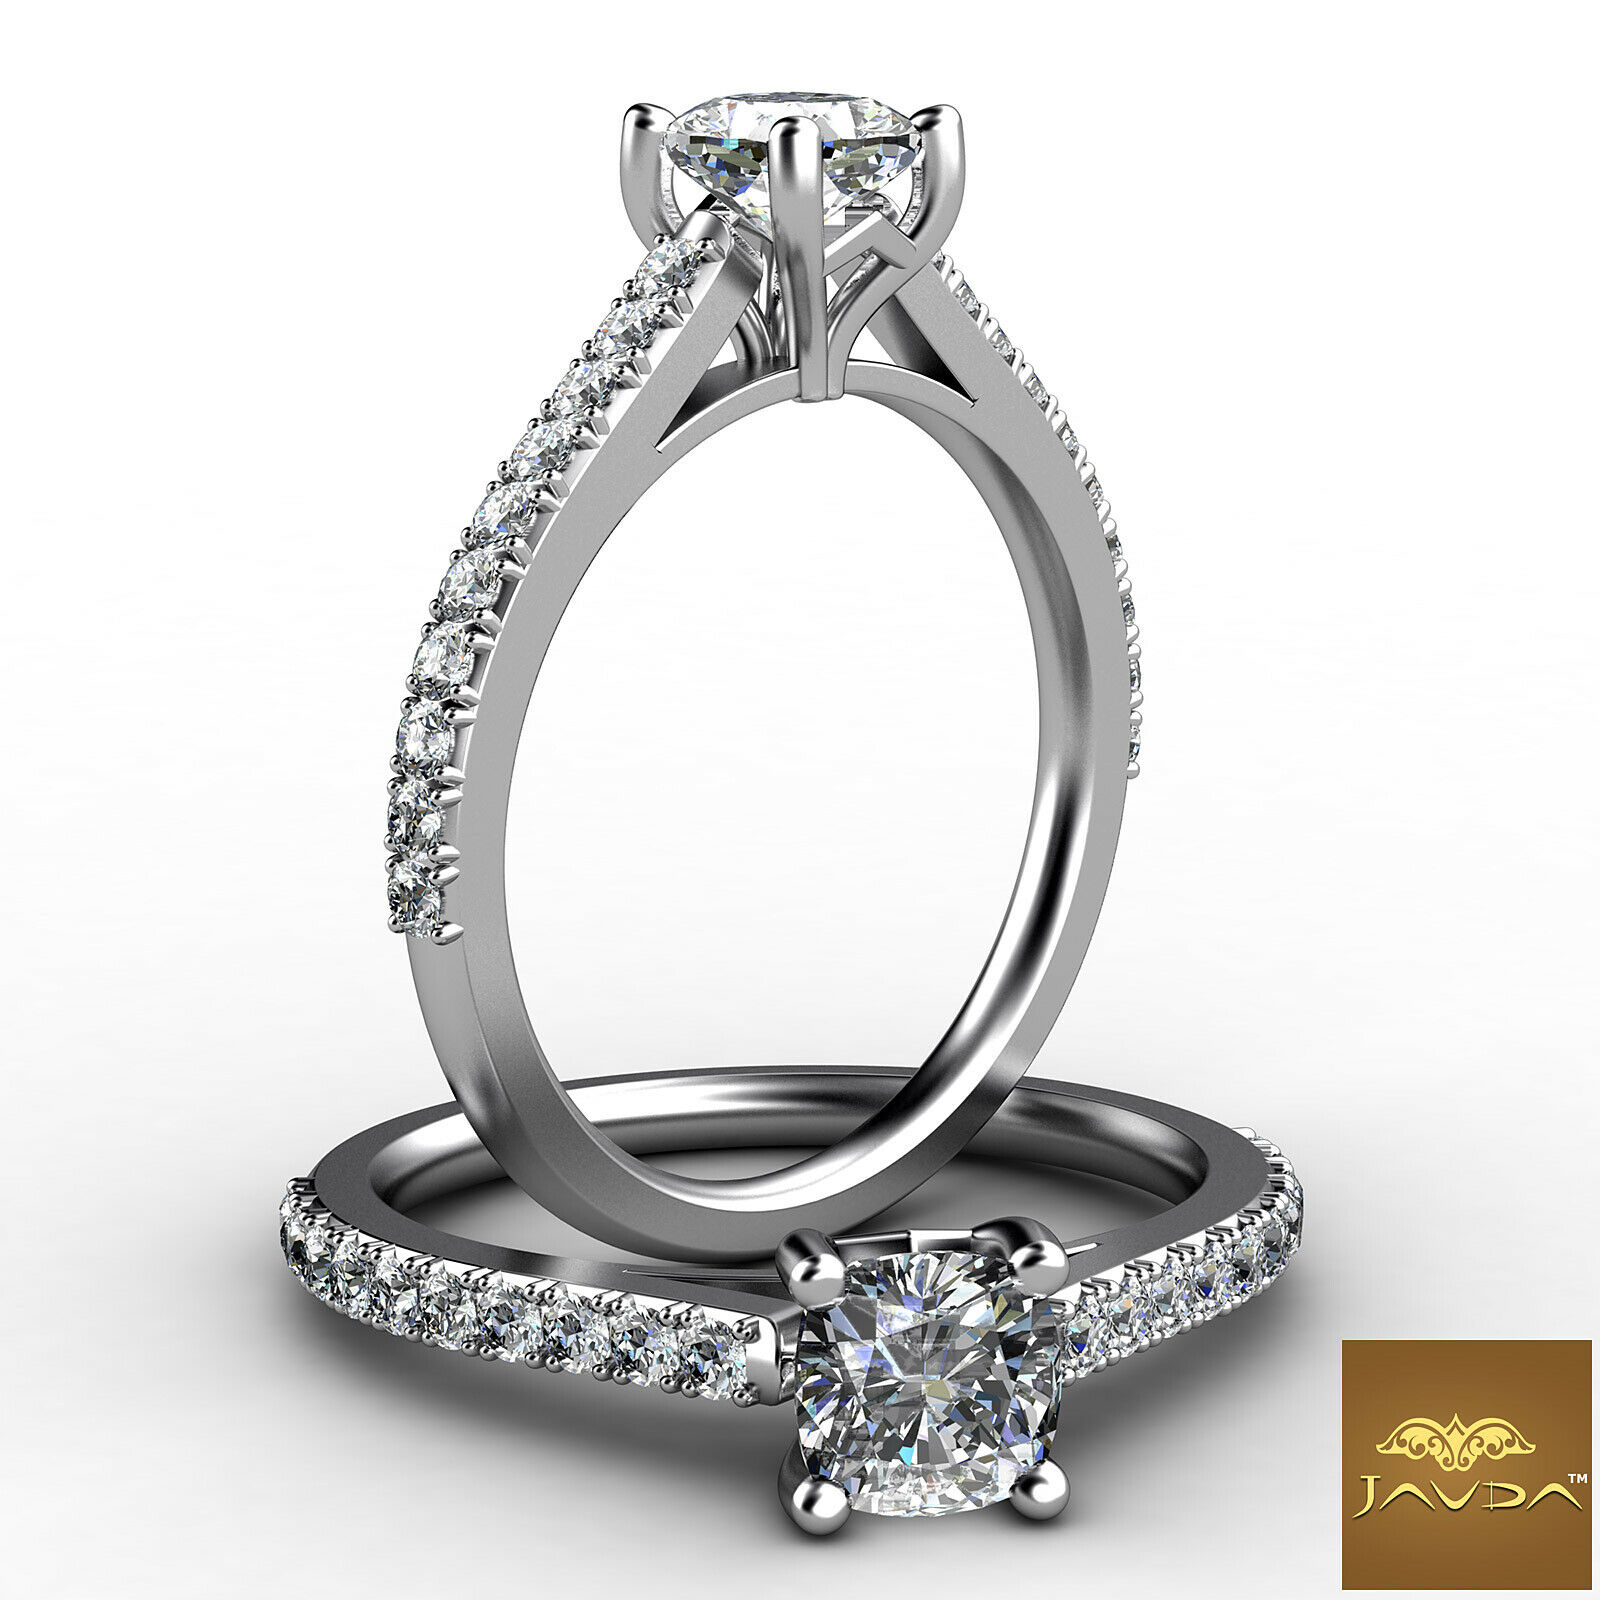 1.1ctw Double Prong Setting Cushion Diamond Engagement Ring GIA H-VS2 White Gold